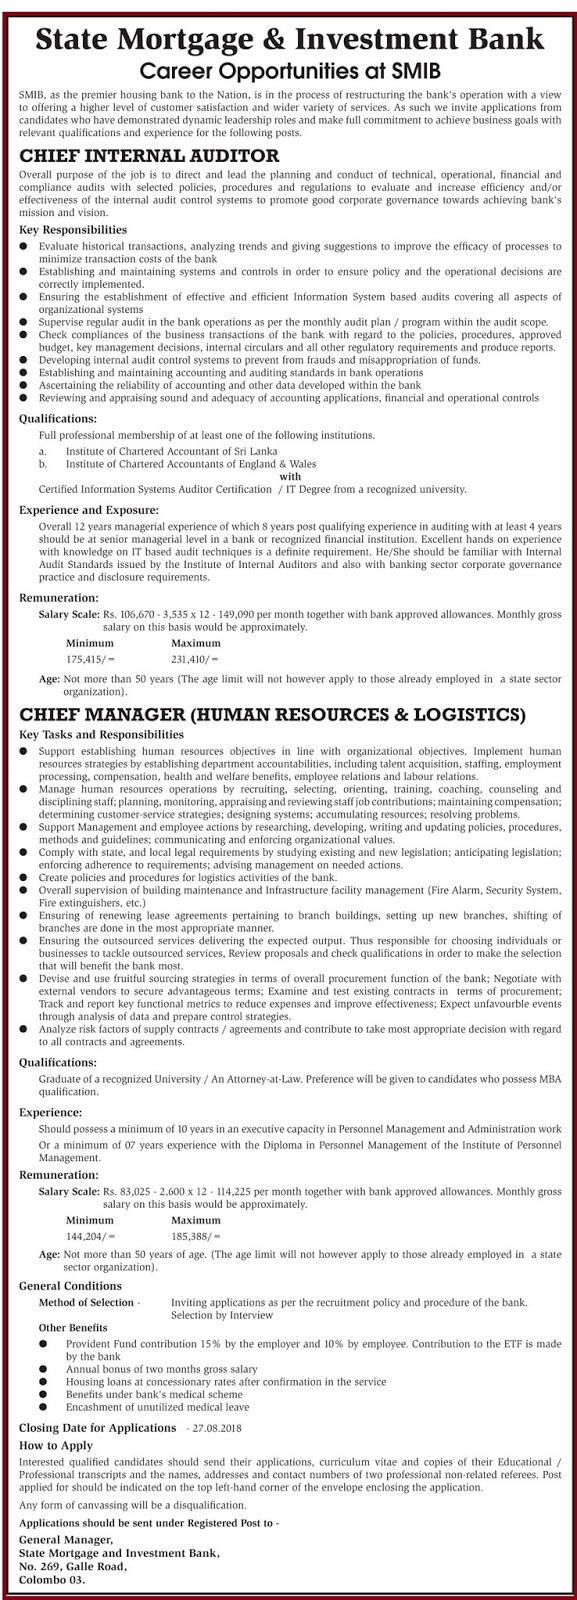 Chief Internal Auditor / Chief Manager (Human Resources & Logistics)